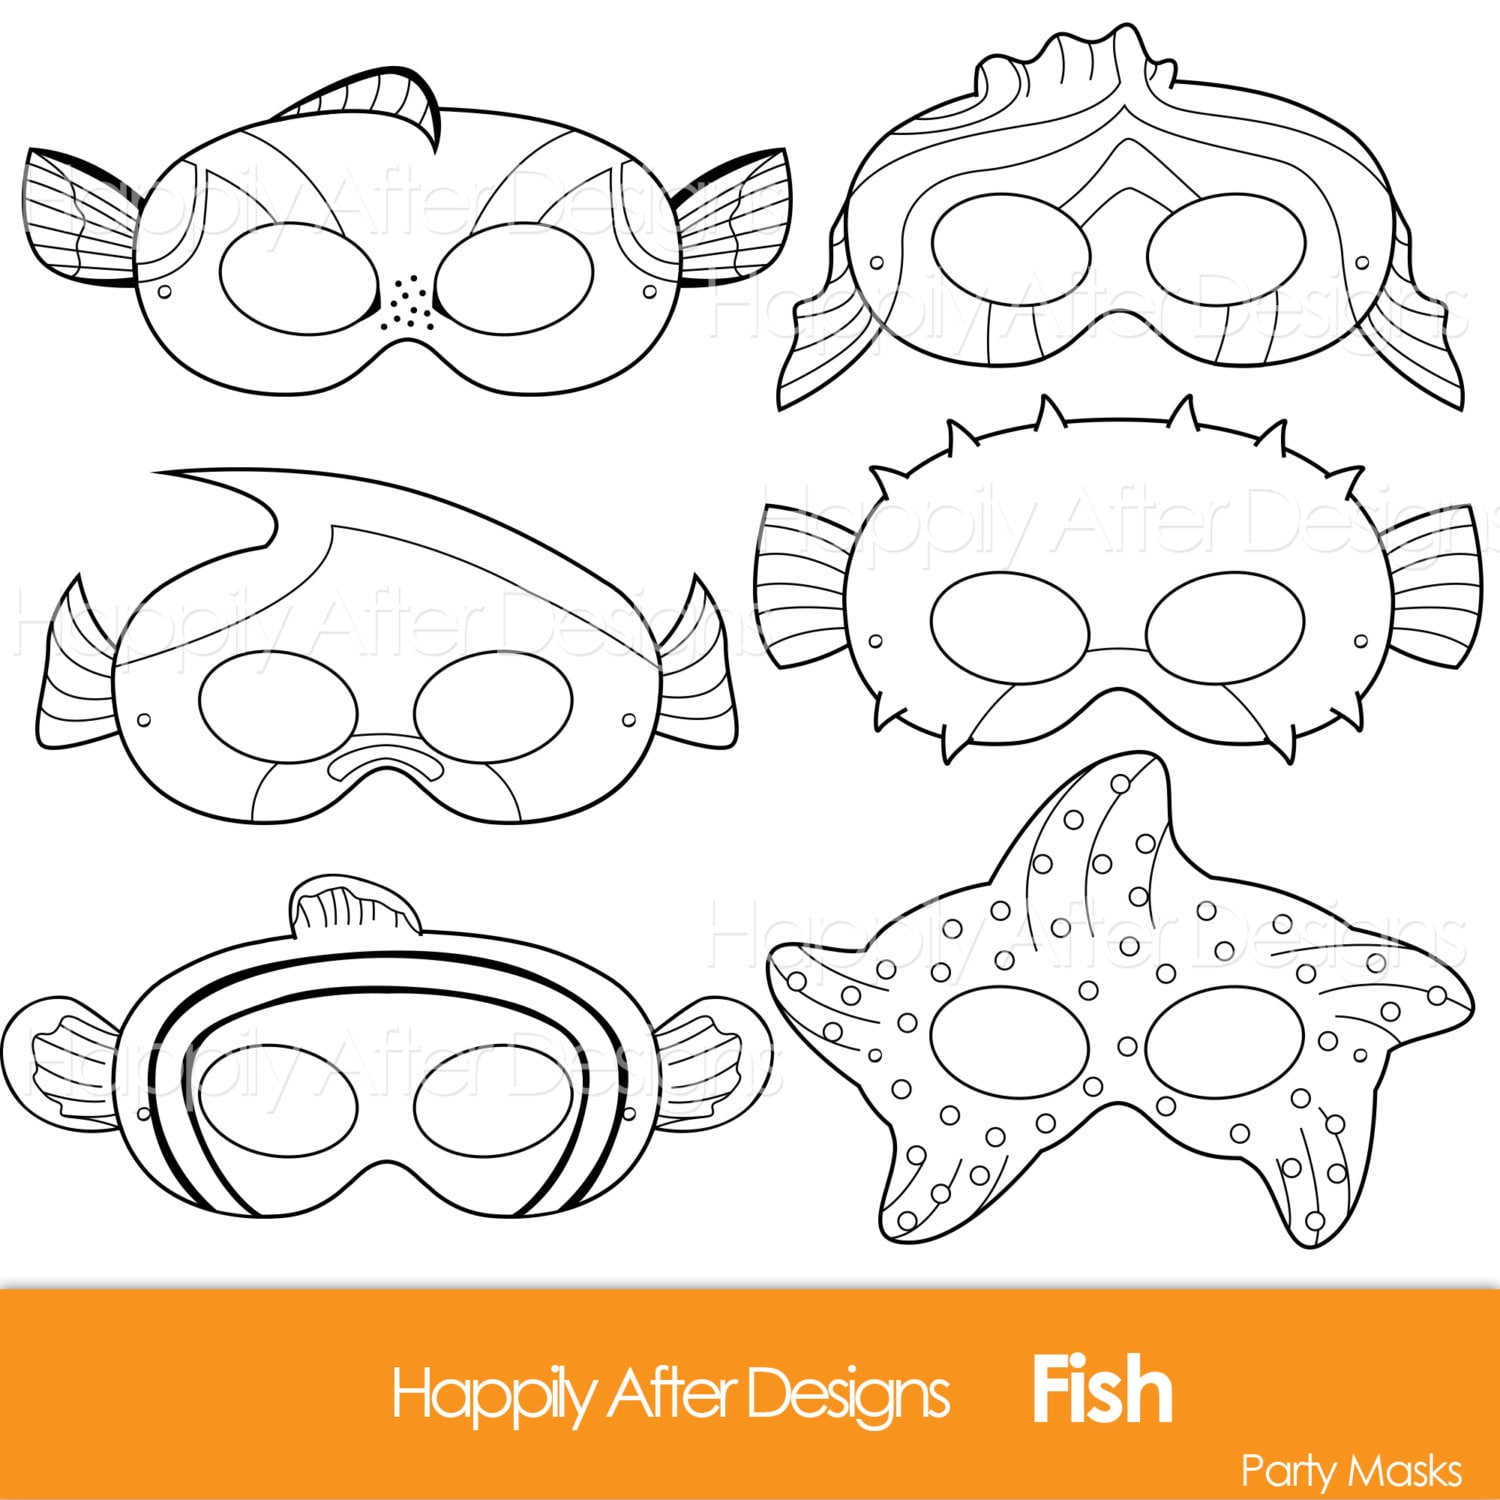 fish printable coloring masks clownfish mask blue tang